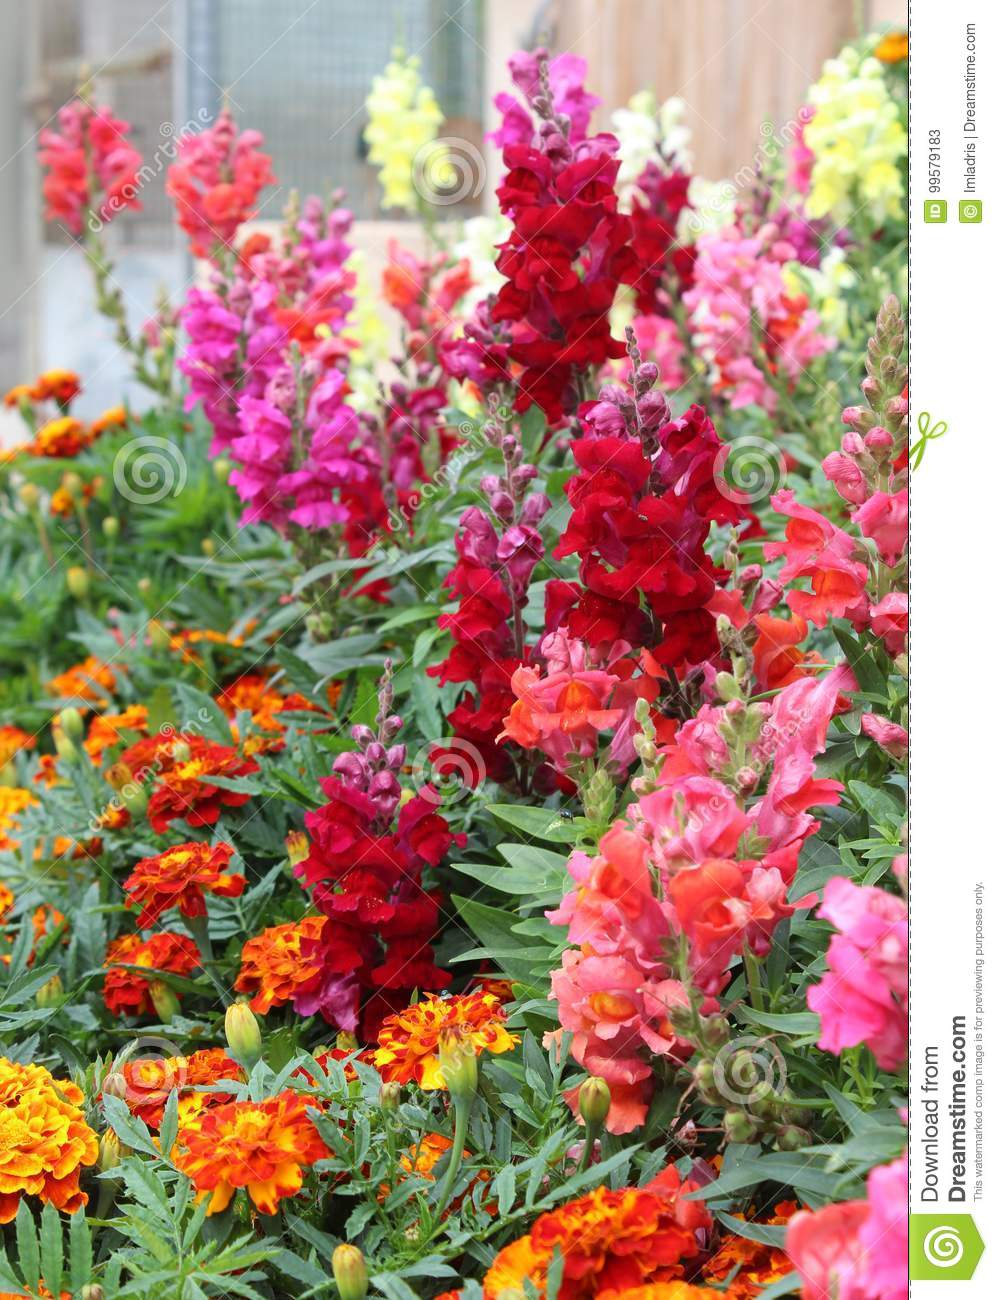 Summer Bedding Plants stock image. Image of flowering - 99579183